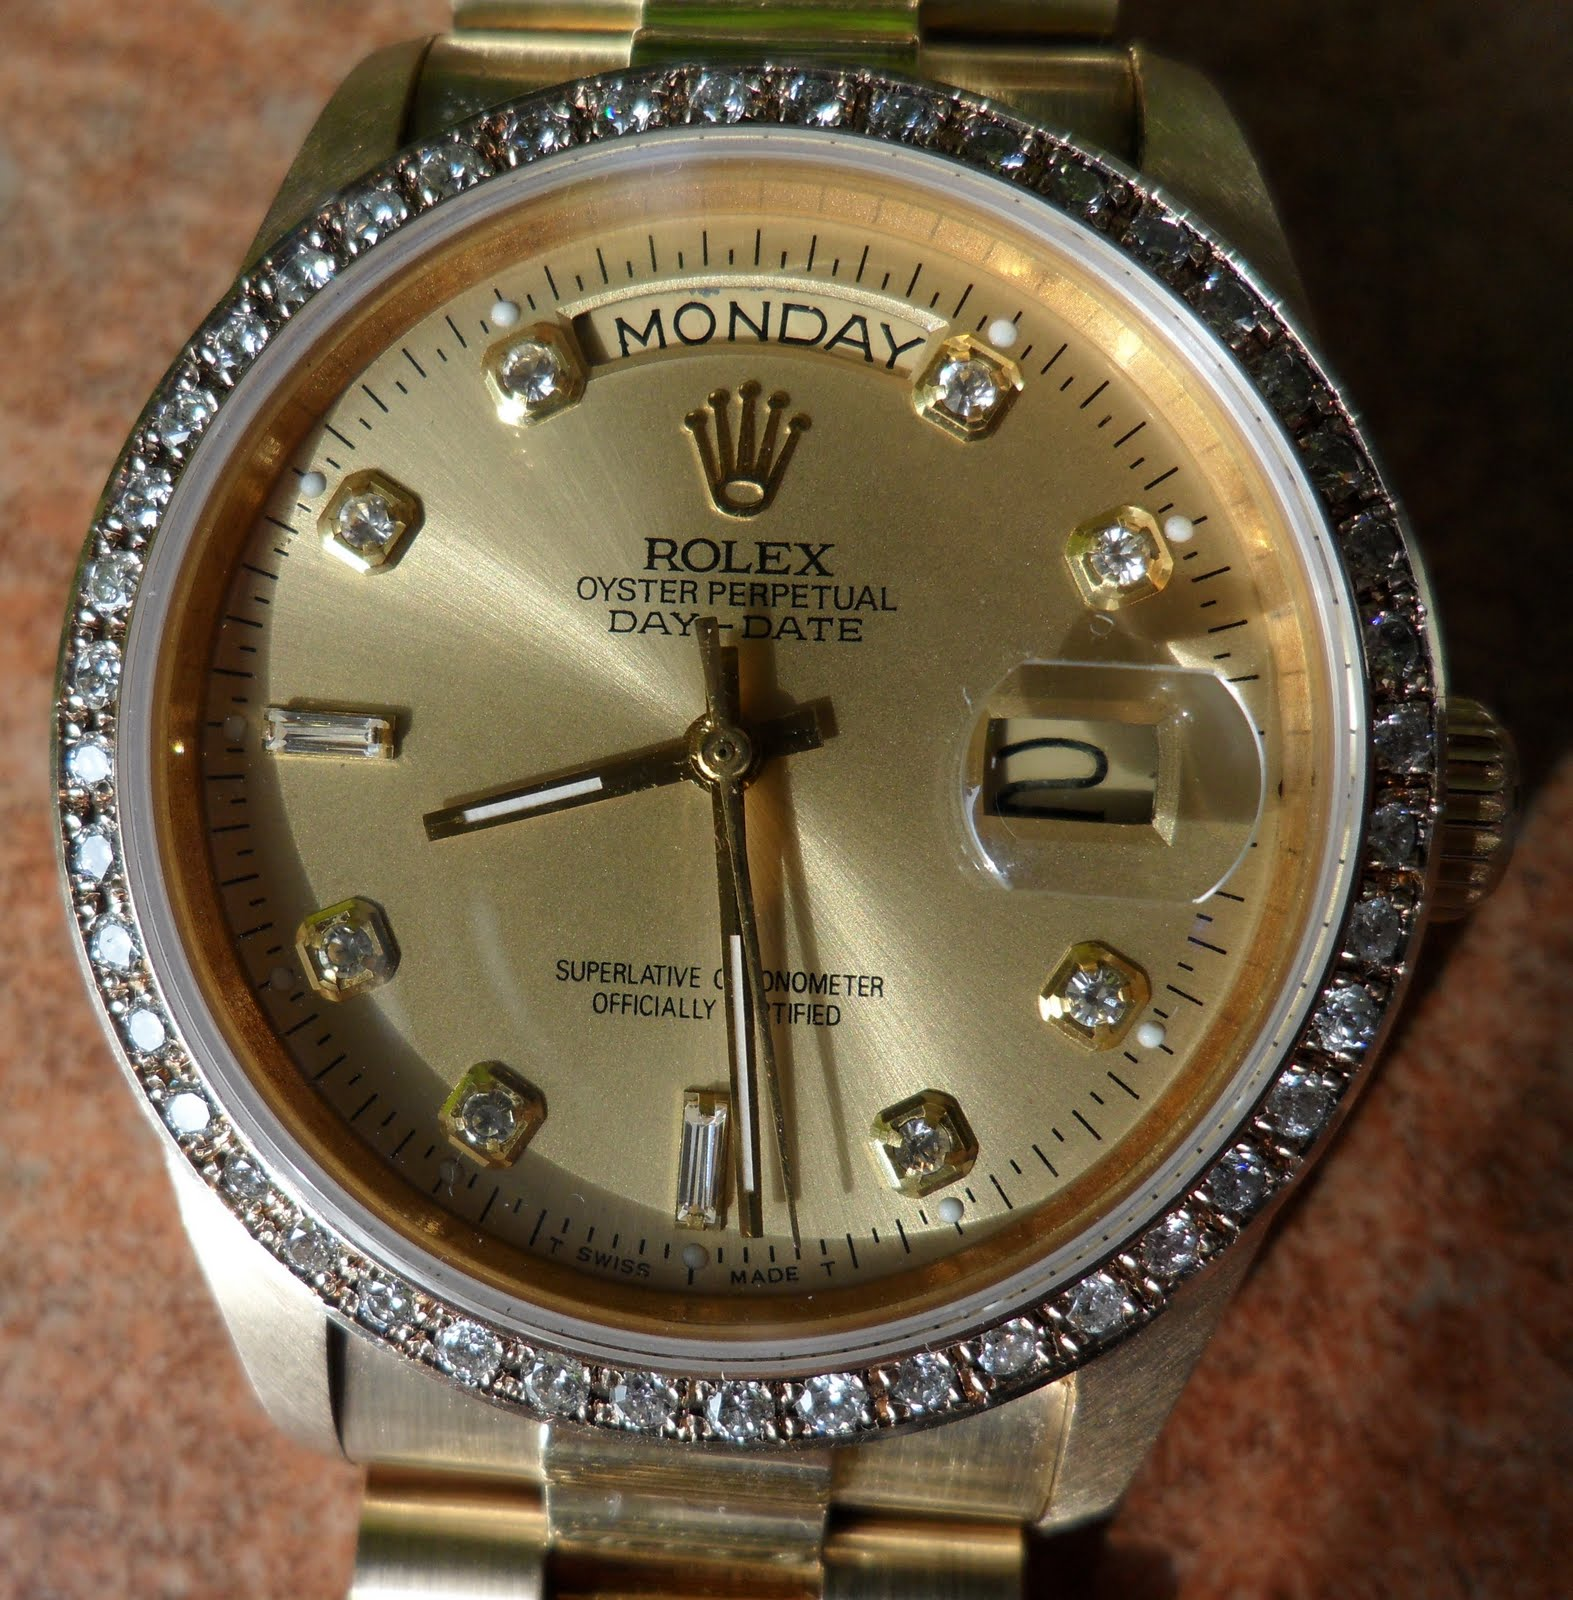 Jual Jam Rolex Gold Original Welcome To Tangan Pria Expedition 6631 Black Yellow Triple Time 18k Diamond Day Date Automatic